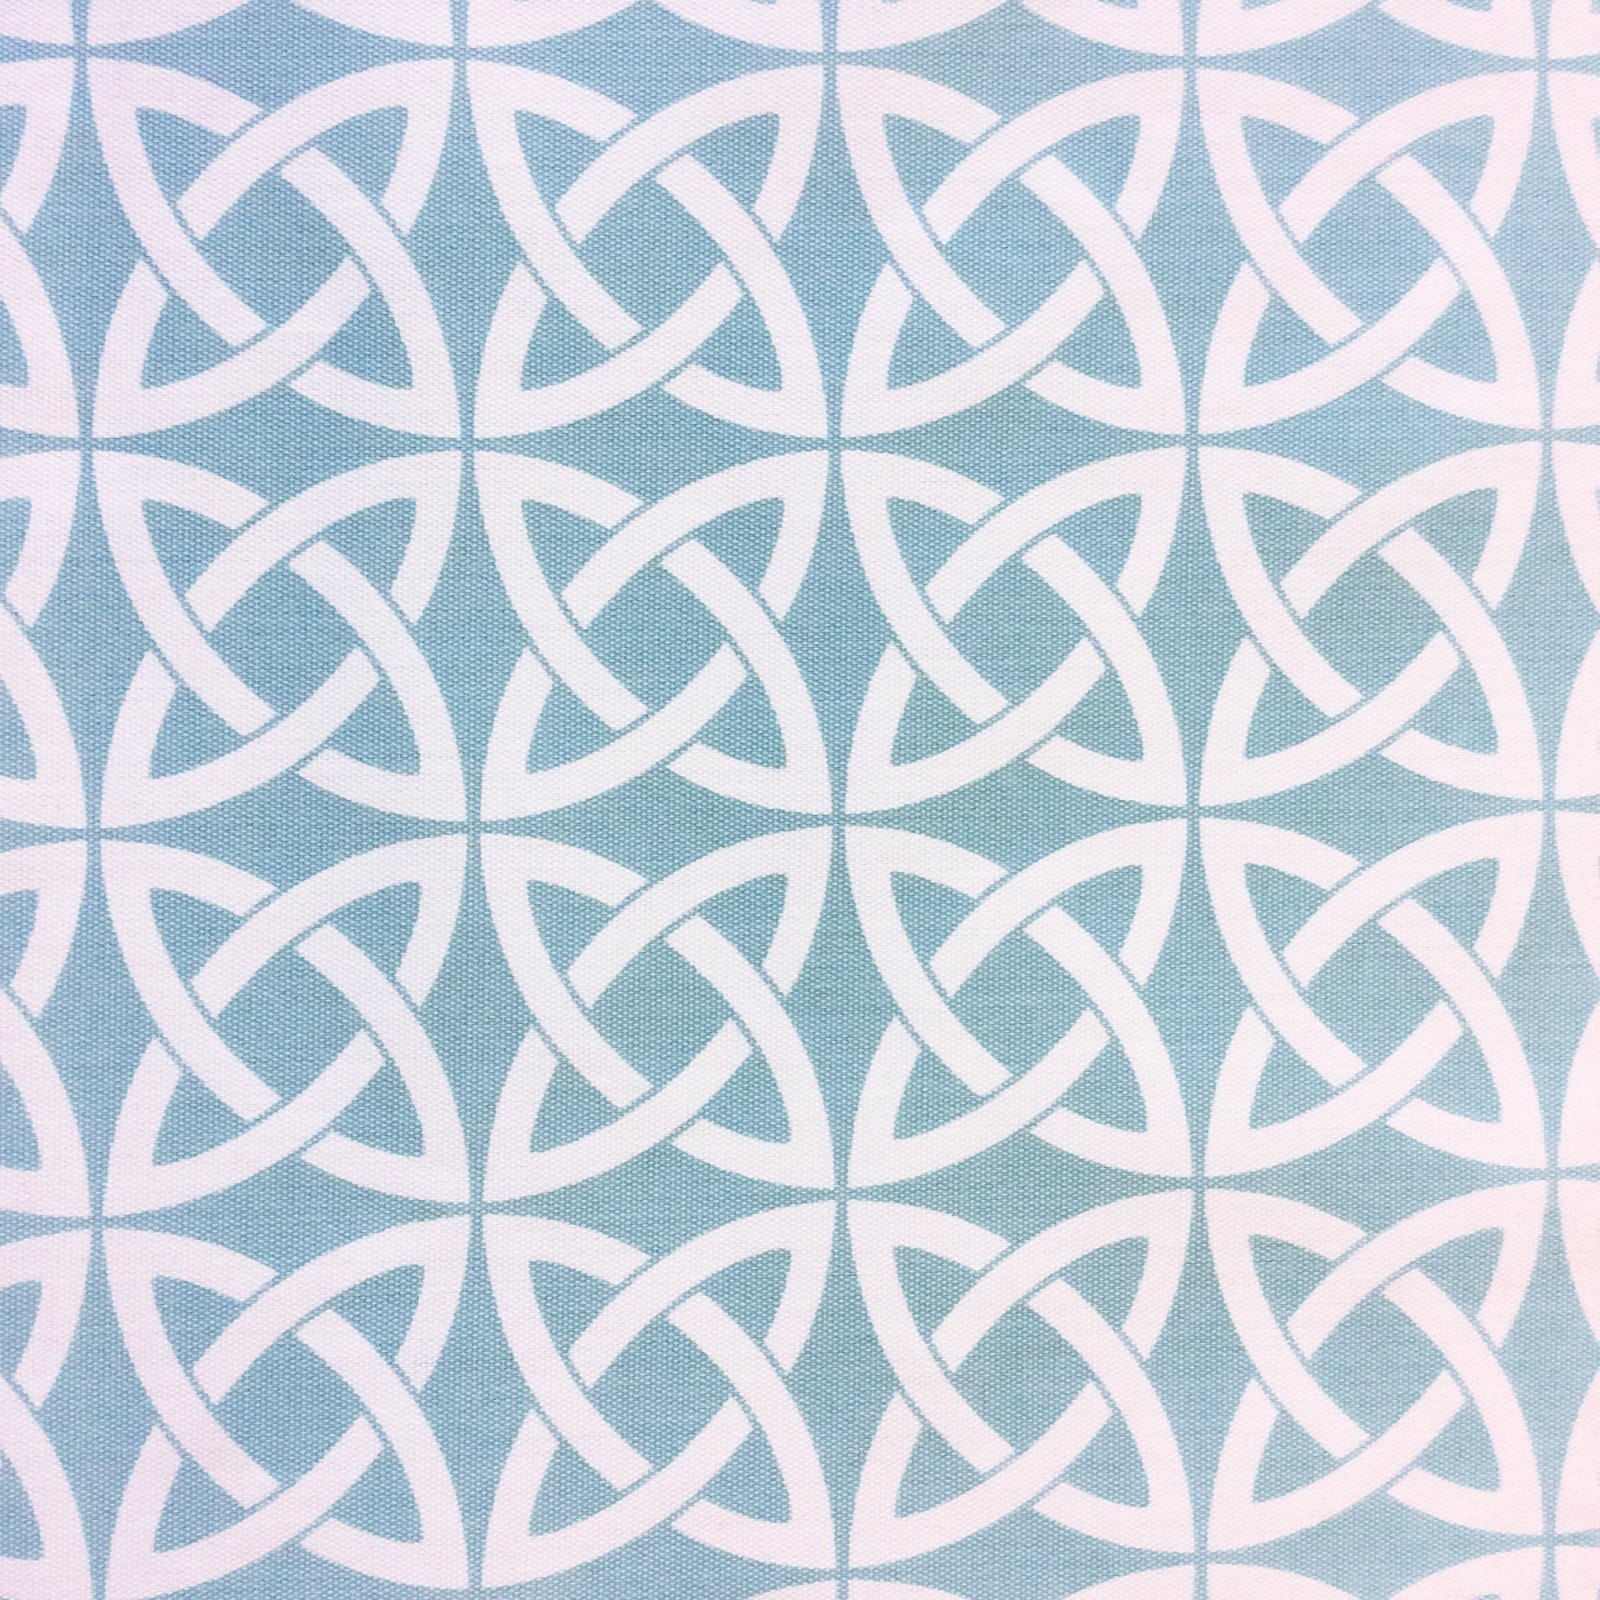 Lattice Link Blue White Lattice Link Celtic Knot Geo Moroccan